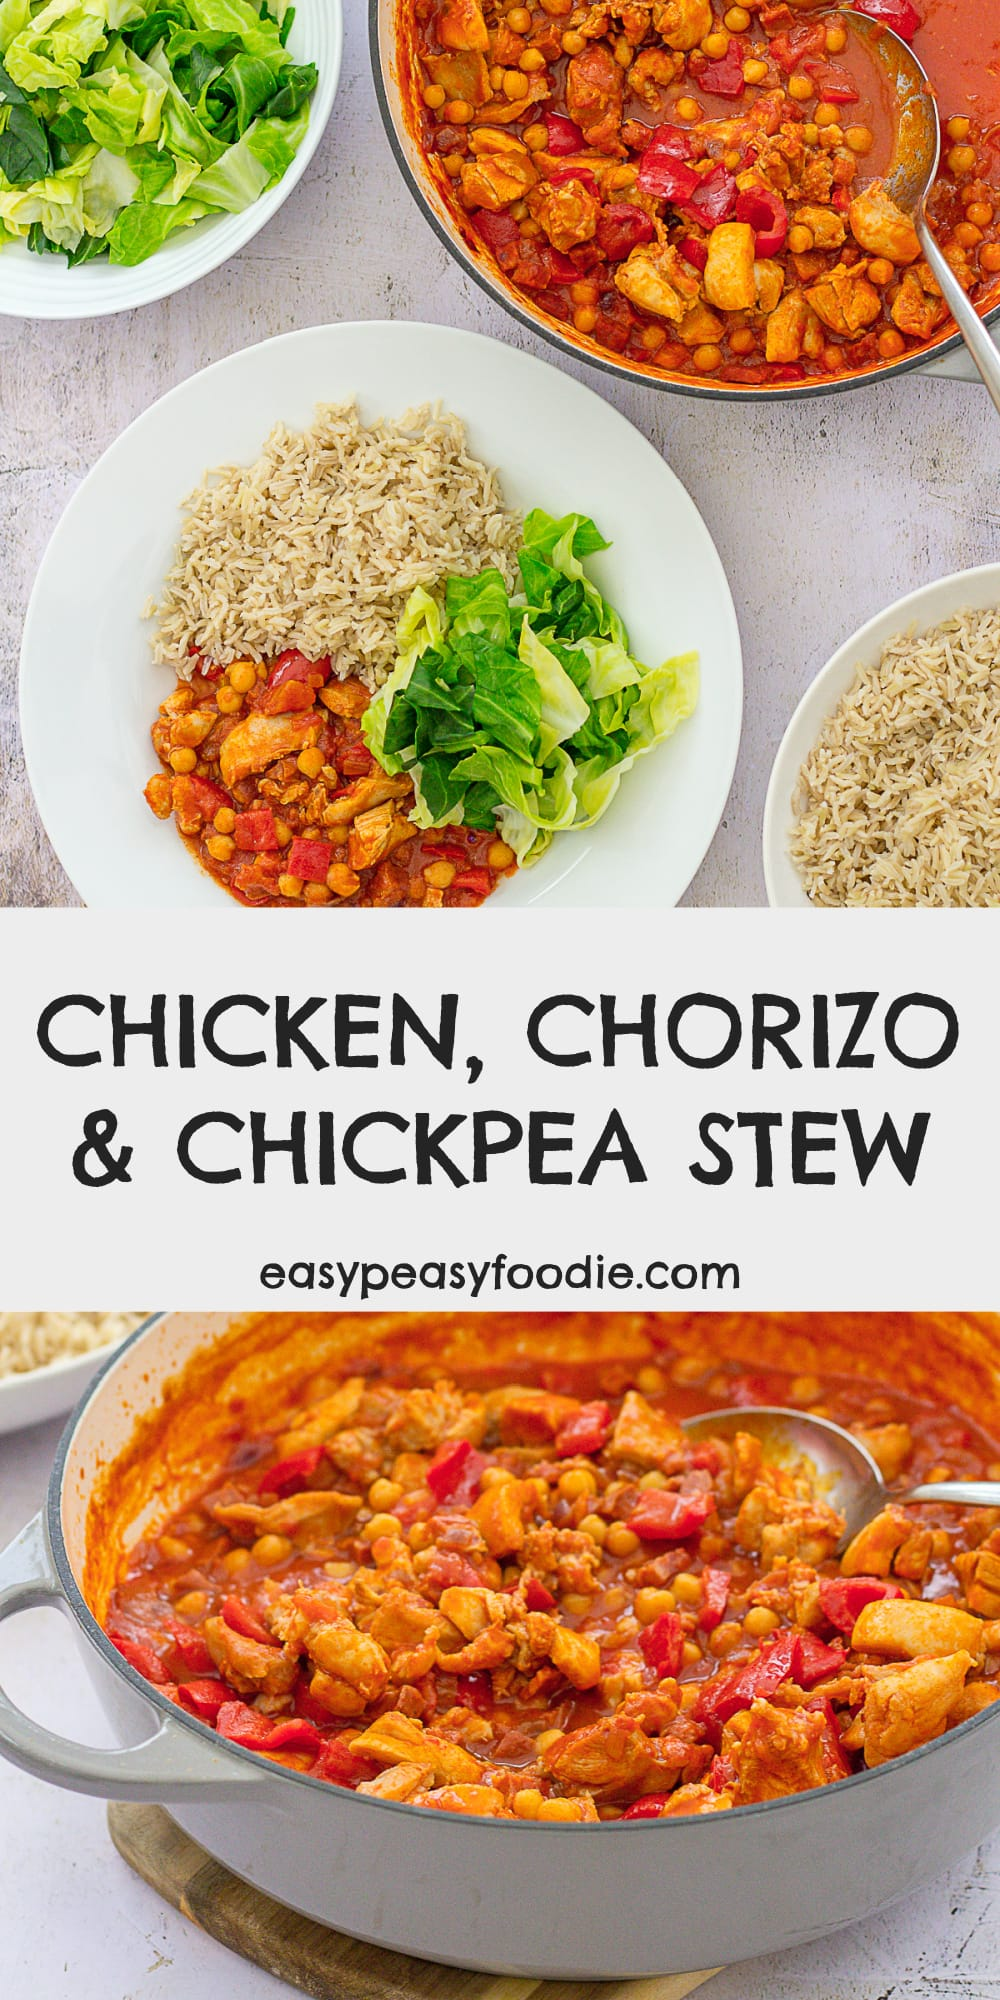 Easy Chicken, Chorizo and Chickpea Stew - pinnable image for Pinterest